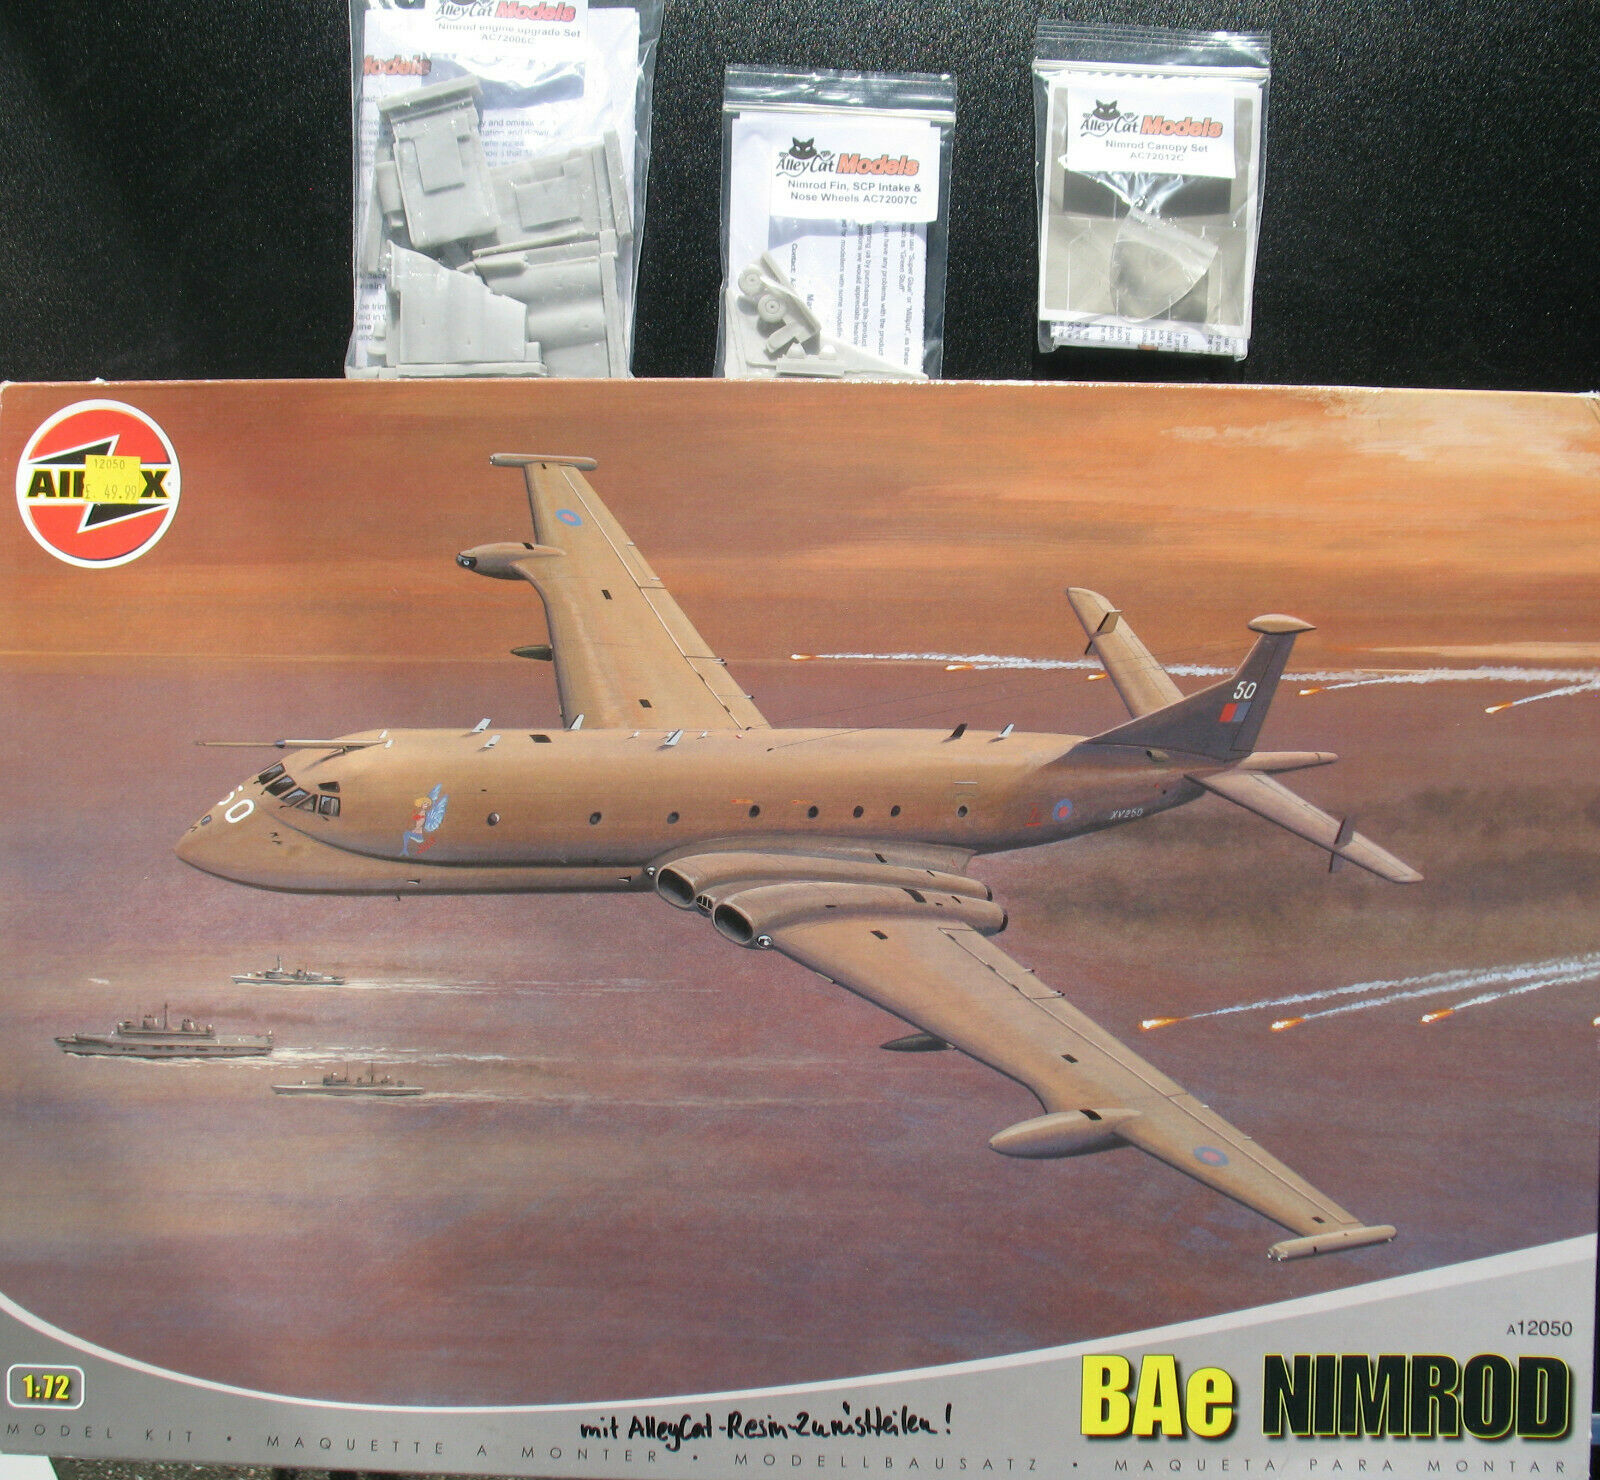 AIRFIX A12050 - BAe NIMROD  Alley Cat Resin Parts - 1 72 - Flugzeug Bausatz Kit  | Attraktives Aussehen